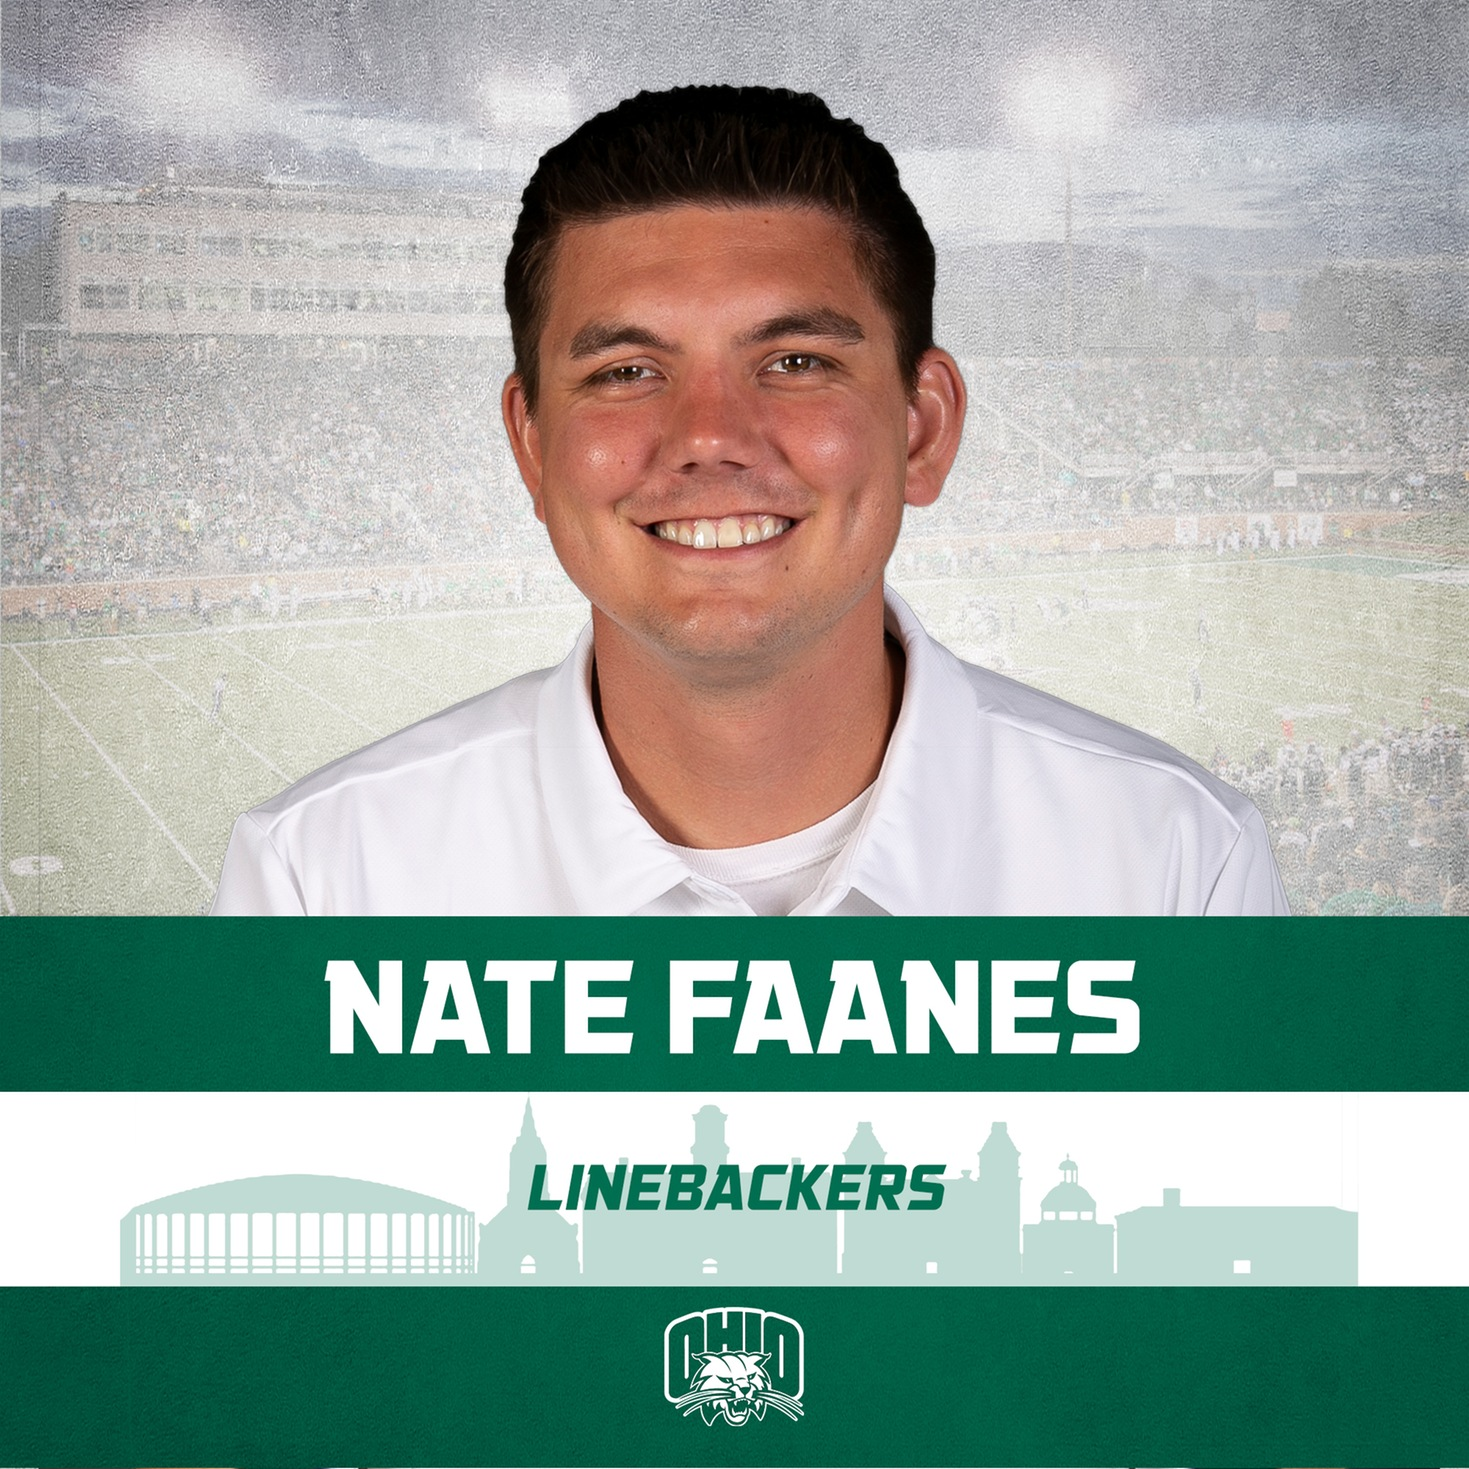 Ohio Football's Faanes Promoted To Linebackers Coach